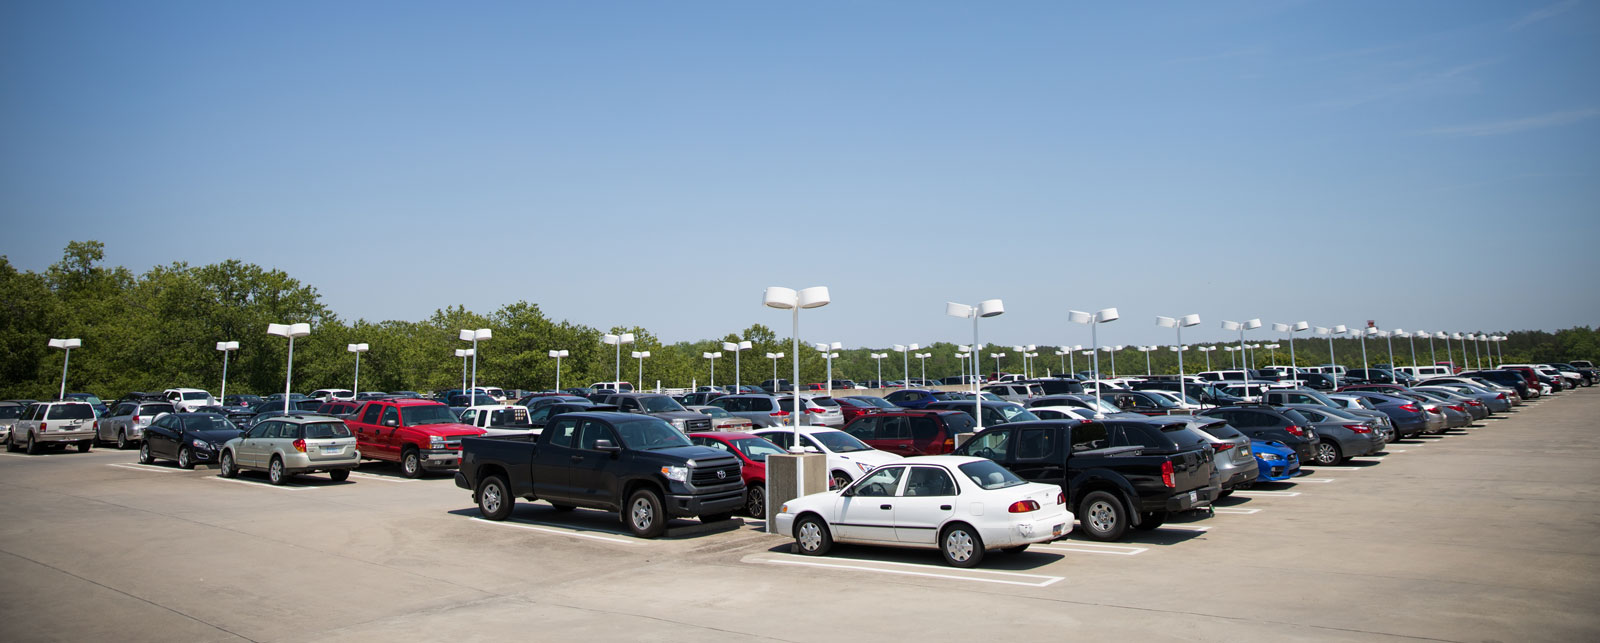 Why Should We Think Of Contacting Airport Parking Company?